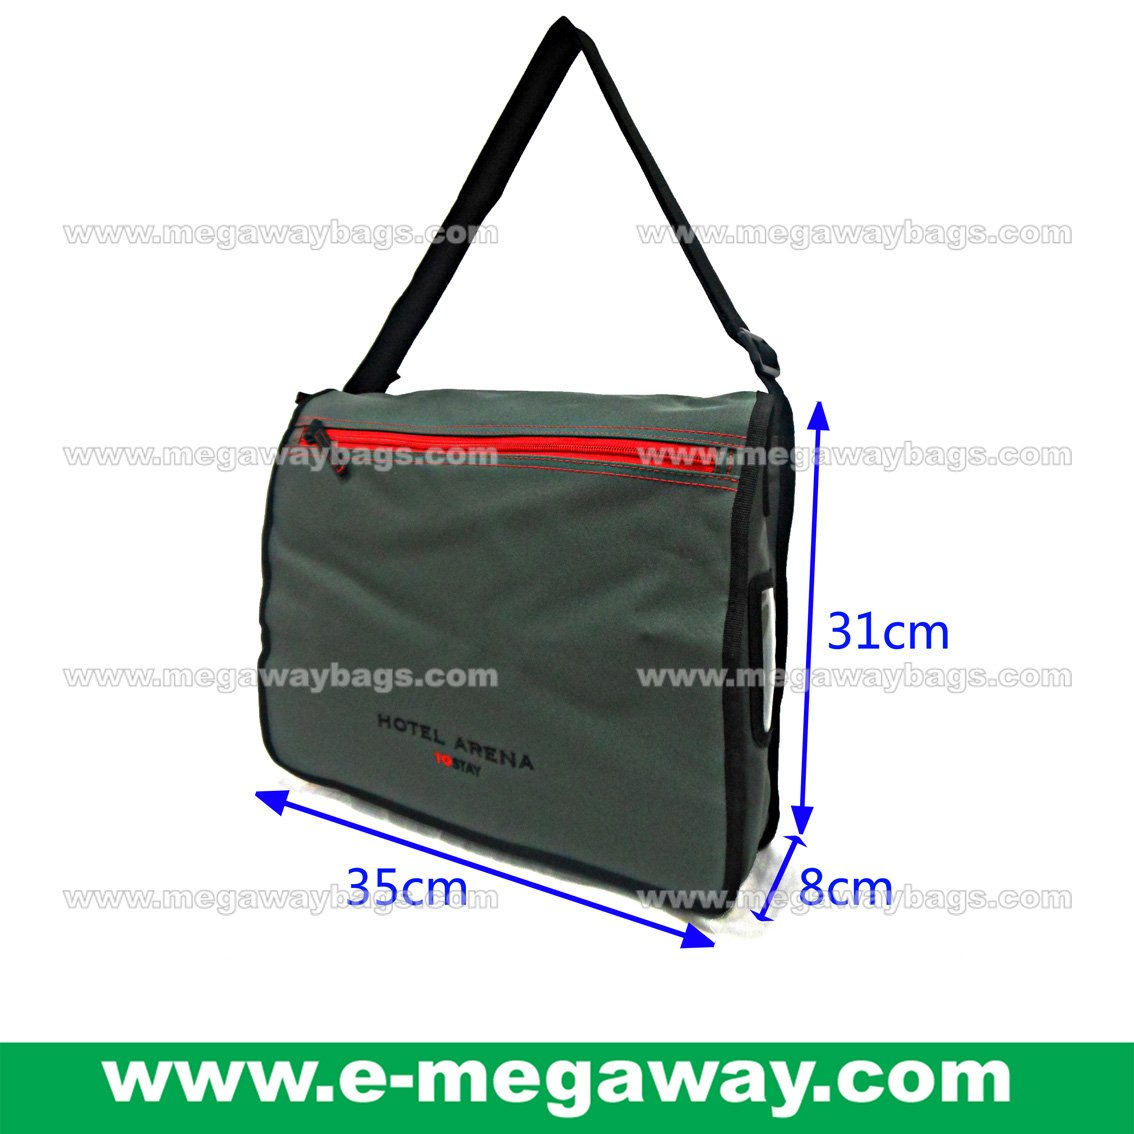 Hotel Arena Travel Shoulder Bag Folder Portfolios Messenger Promotion MegawayBags #CC-0997